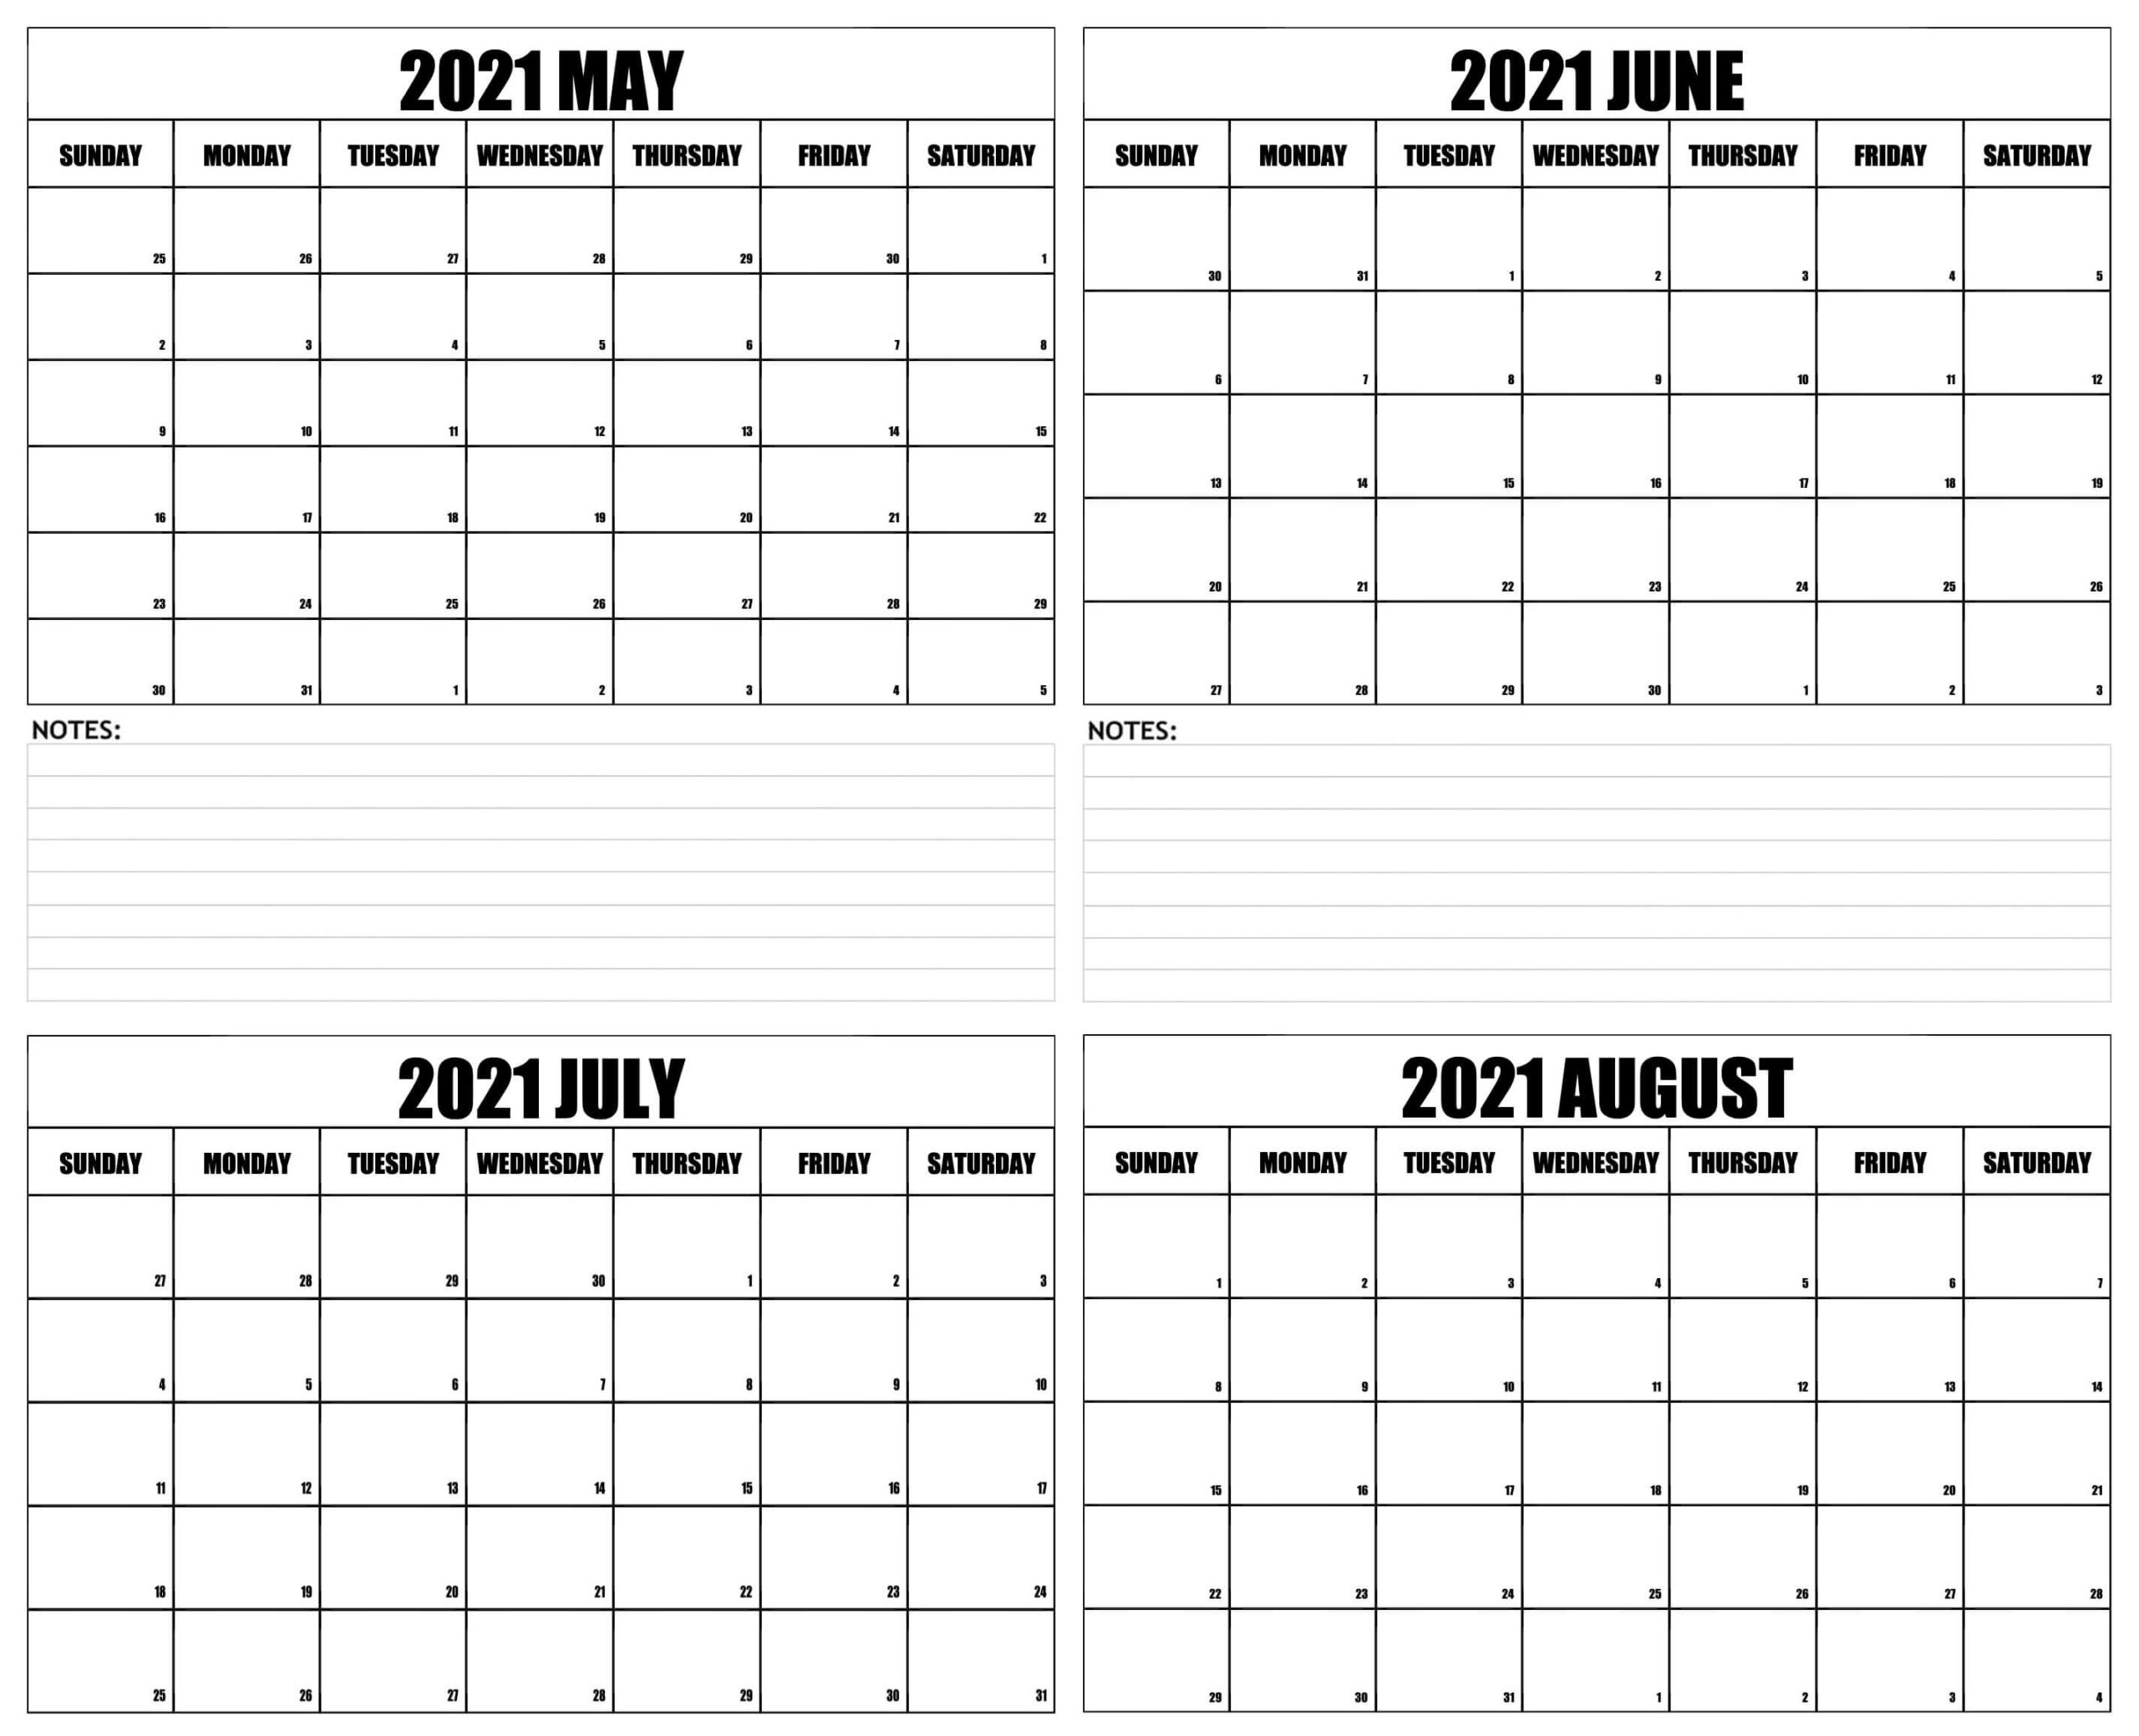 4 Month Calendar From May 2021